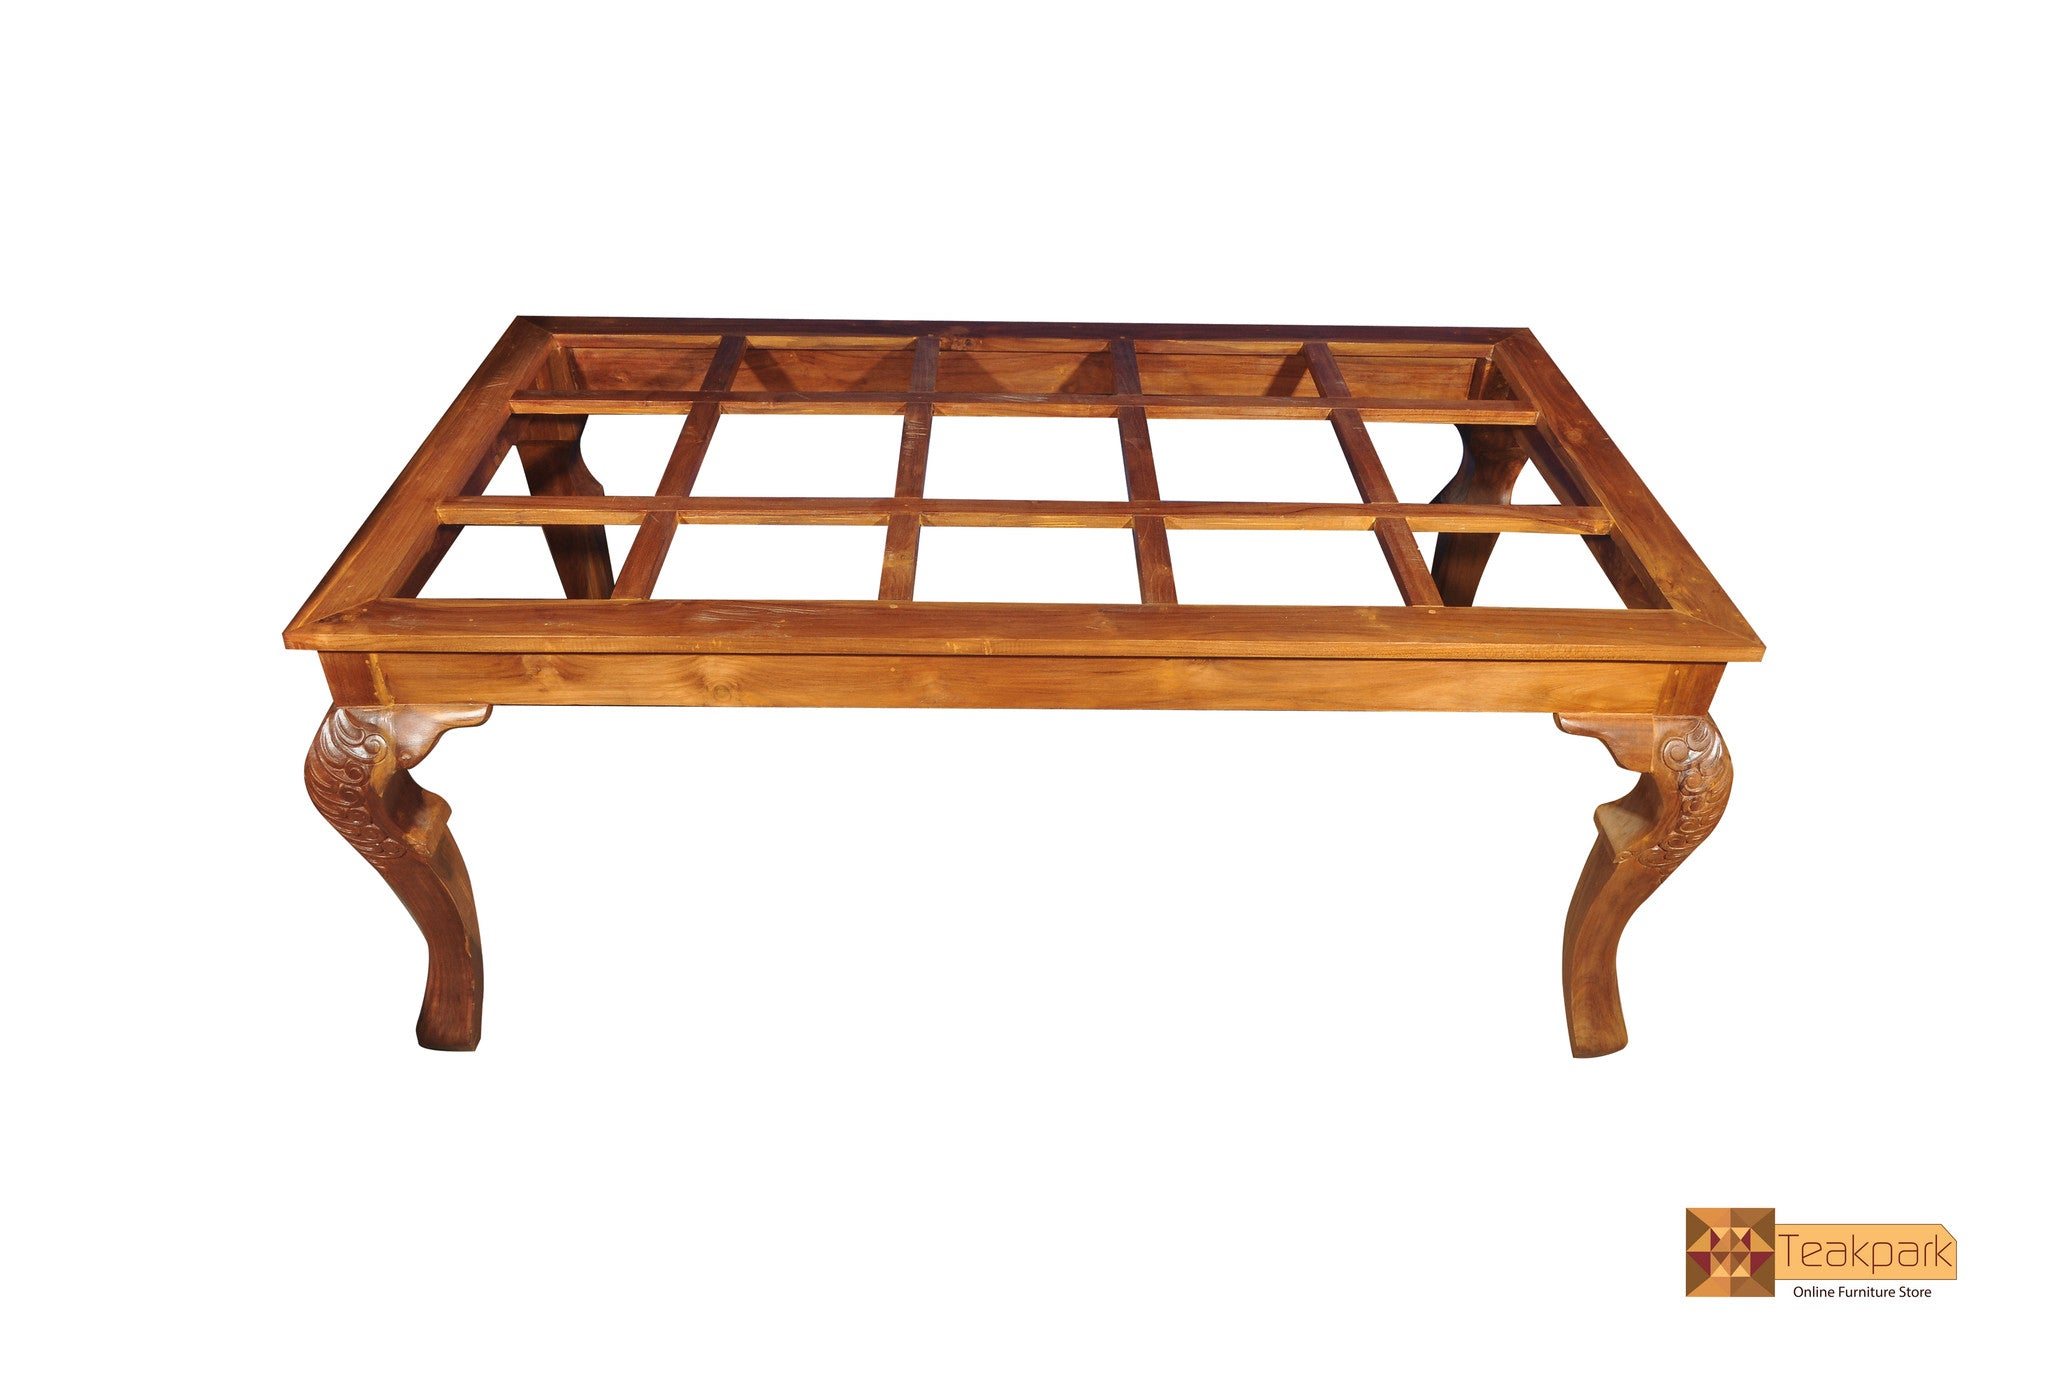 Kaveri Teak Wood Dining Set Glass Top Table With 8 Chairs